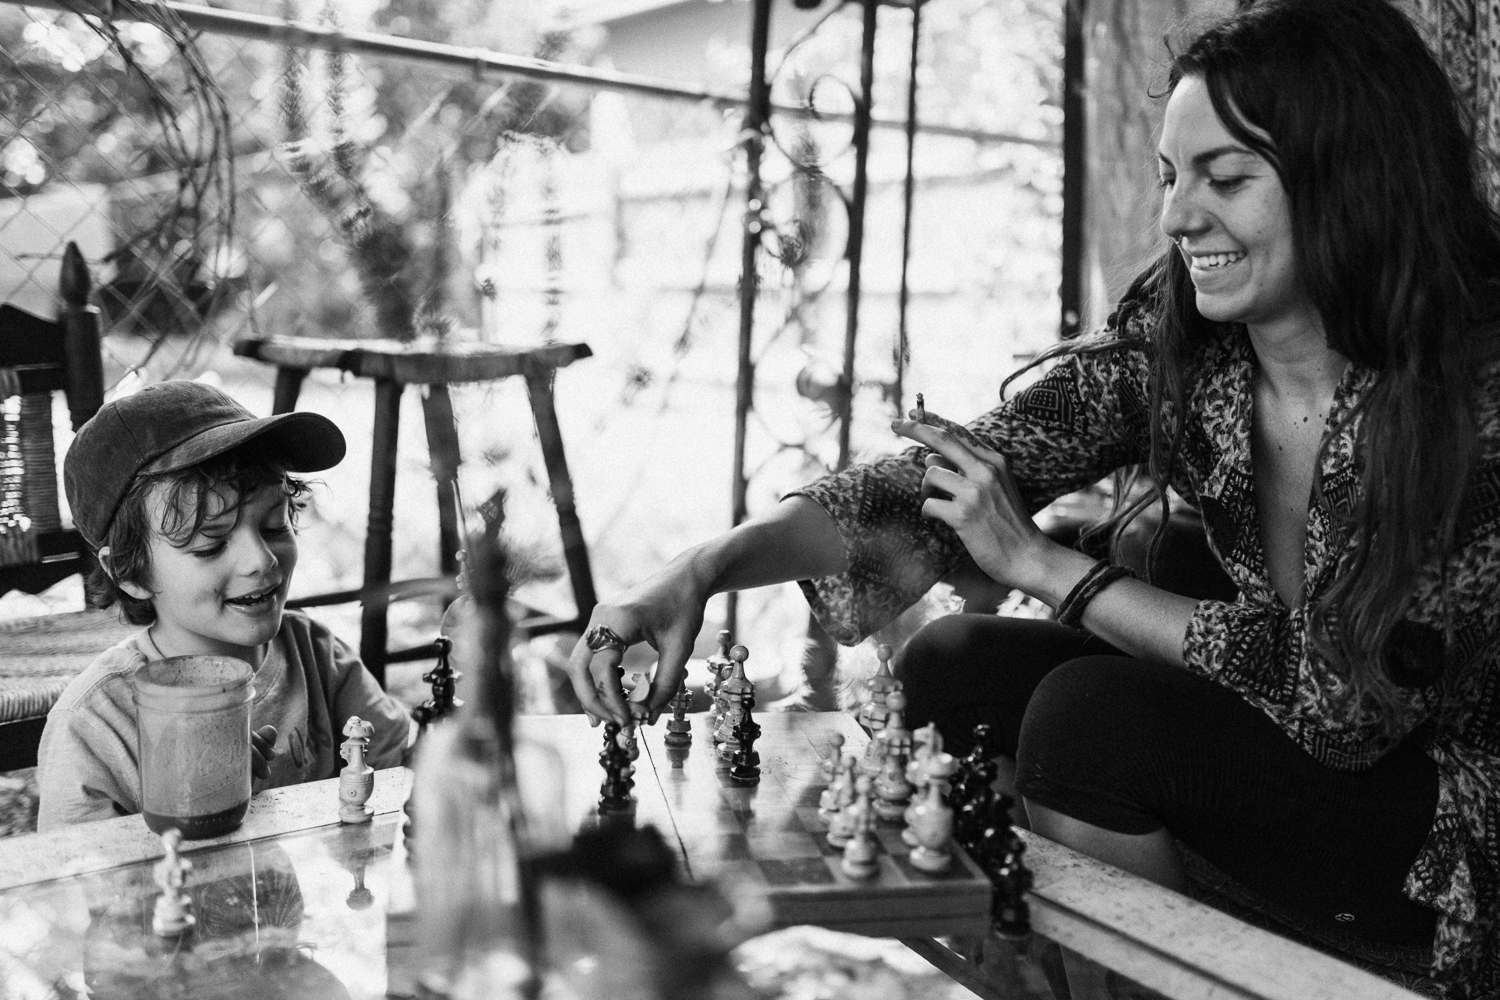 boy-and-mom-playing-chess-black-and-white-outdoor-living-sugarhouse-slc-utah